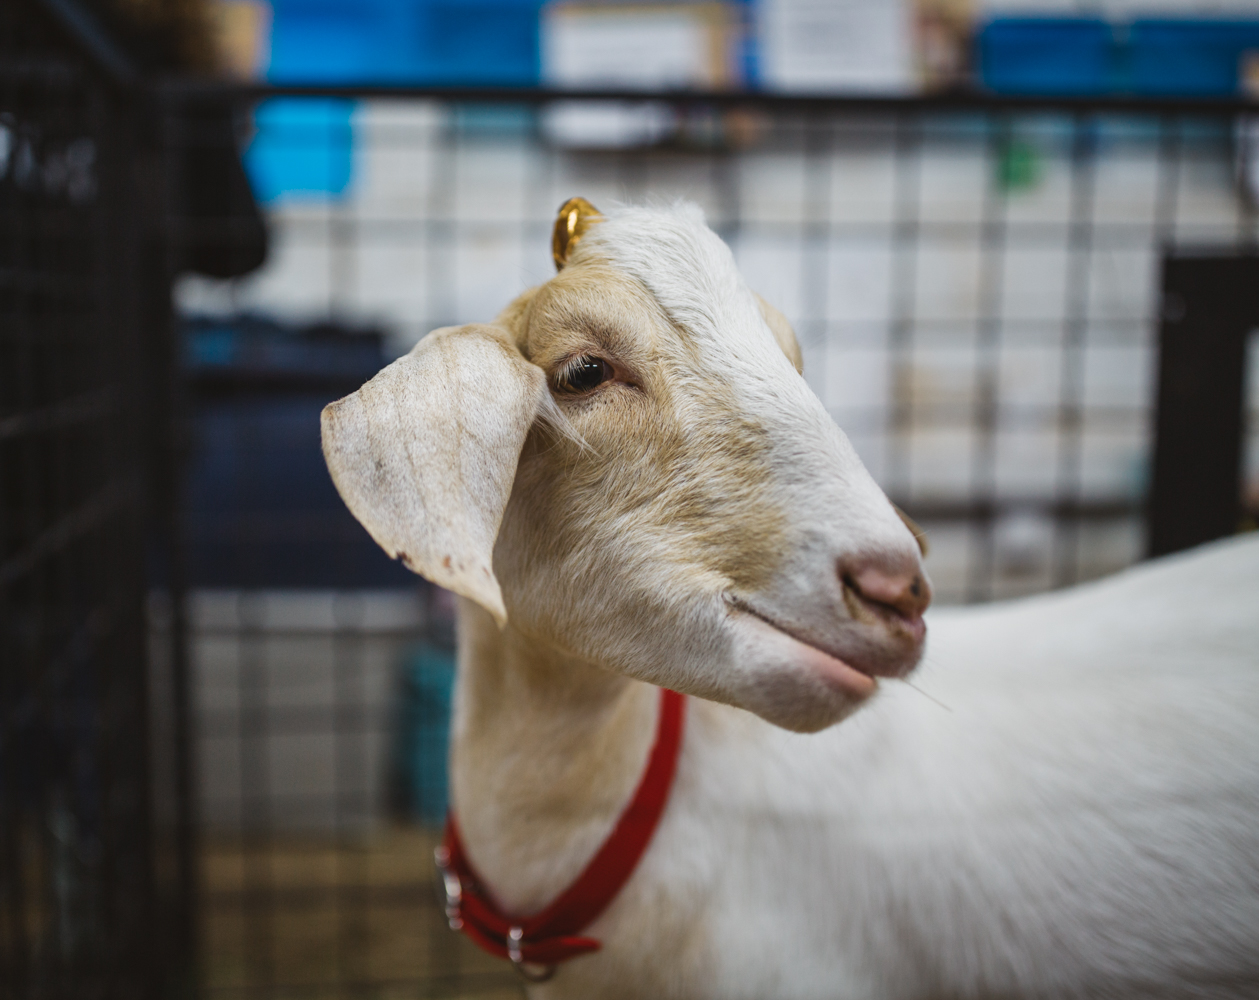 The Washington State Fair boasts an impressive array of farm animals, so we decided to make our way inside to see what cuteness we could find! Bunnies, goats, llamas, cows, and pigs filled the stables, and with a variety of personalities, it is definitely worth your time to meet some of these furry friends. (Image: Ryan McBoyle / Seattle Refined)